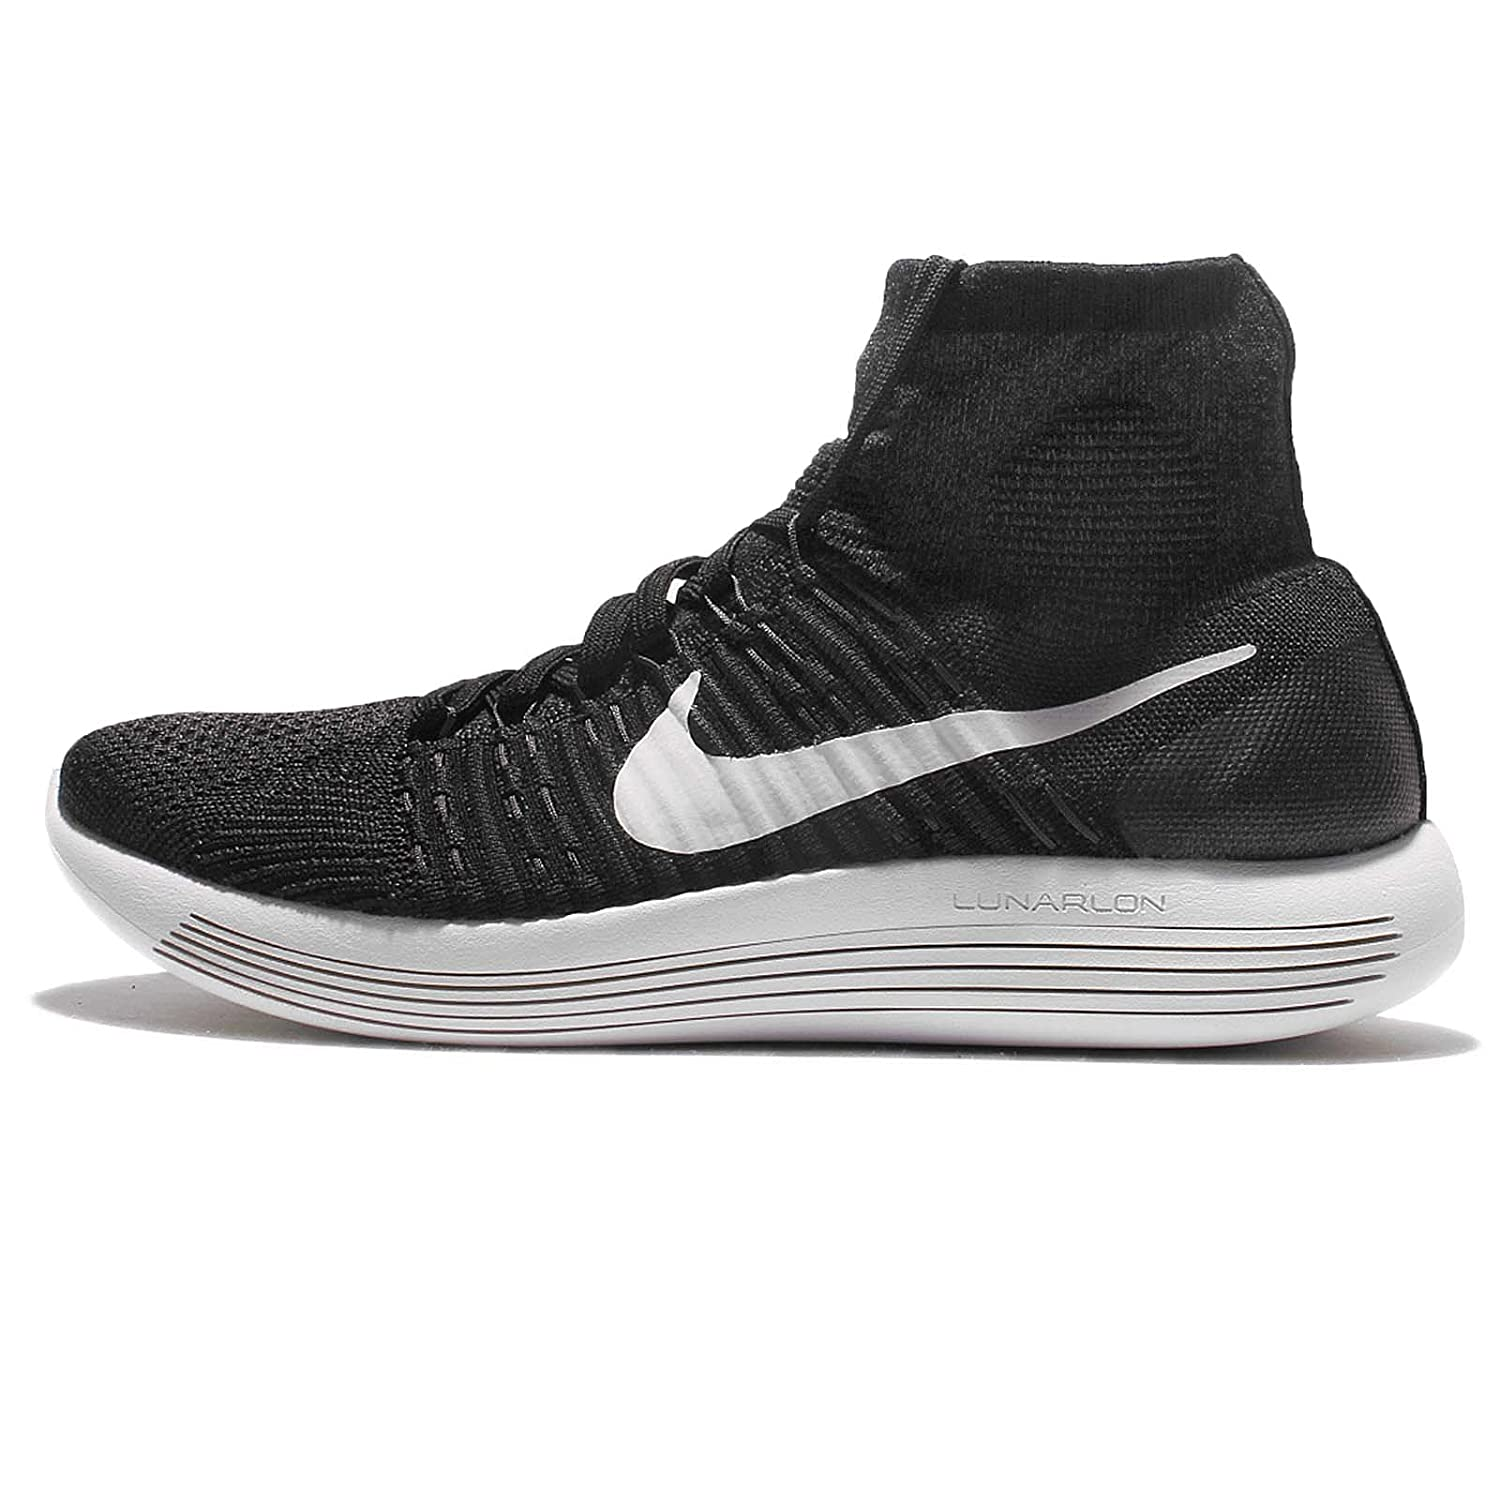 10c90f27f43d ... Nike Mens Lunarepic Flyknit Running Shoes Amazon.co.uk Shoes ...